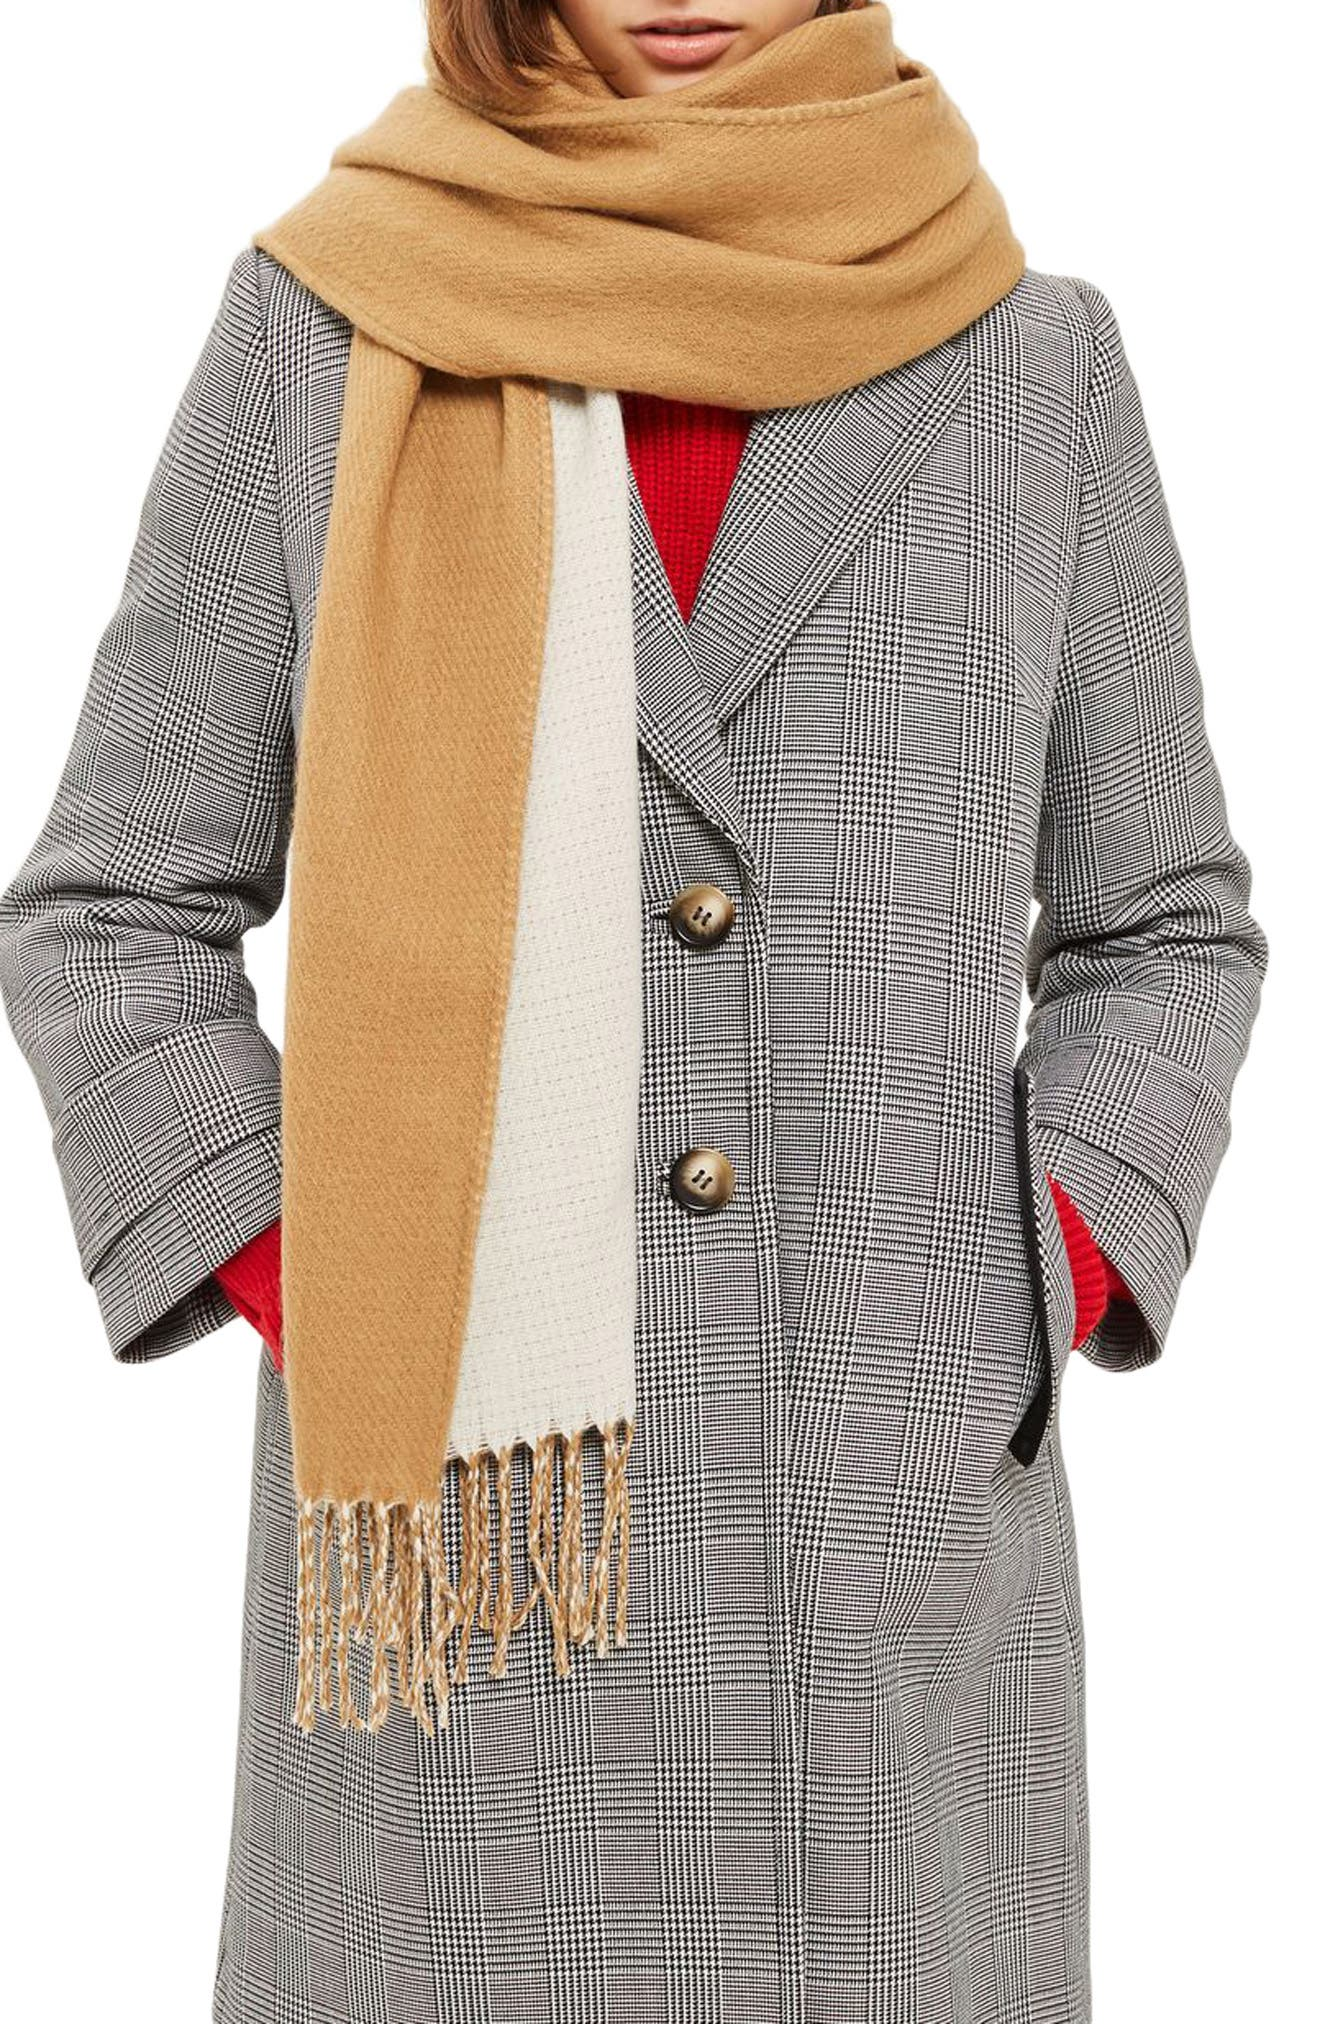 Topshop Double Face Scarf